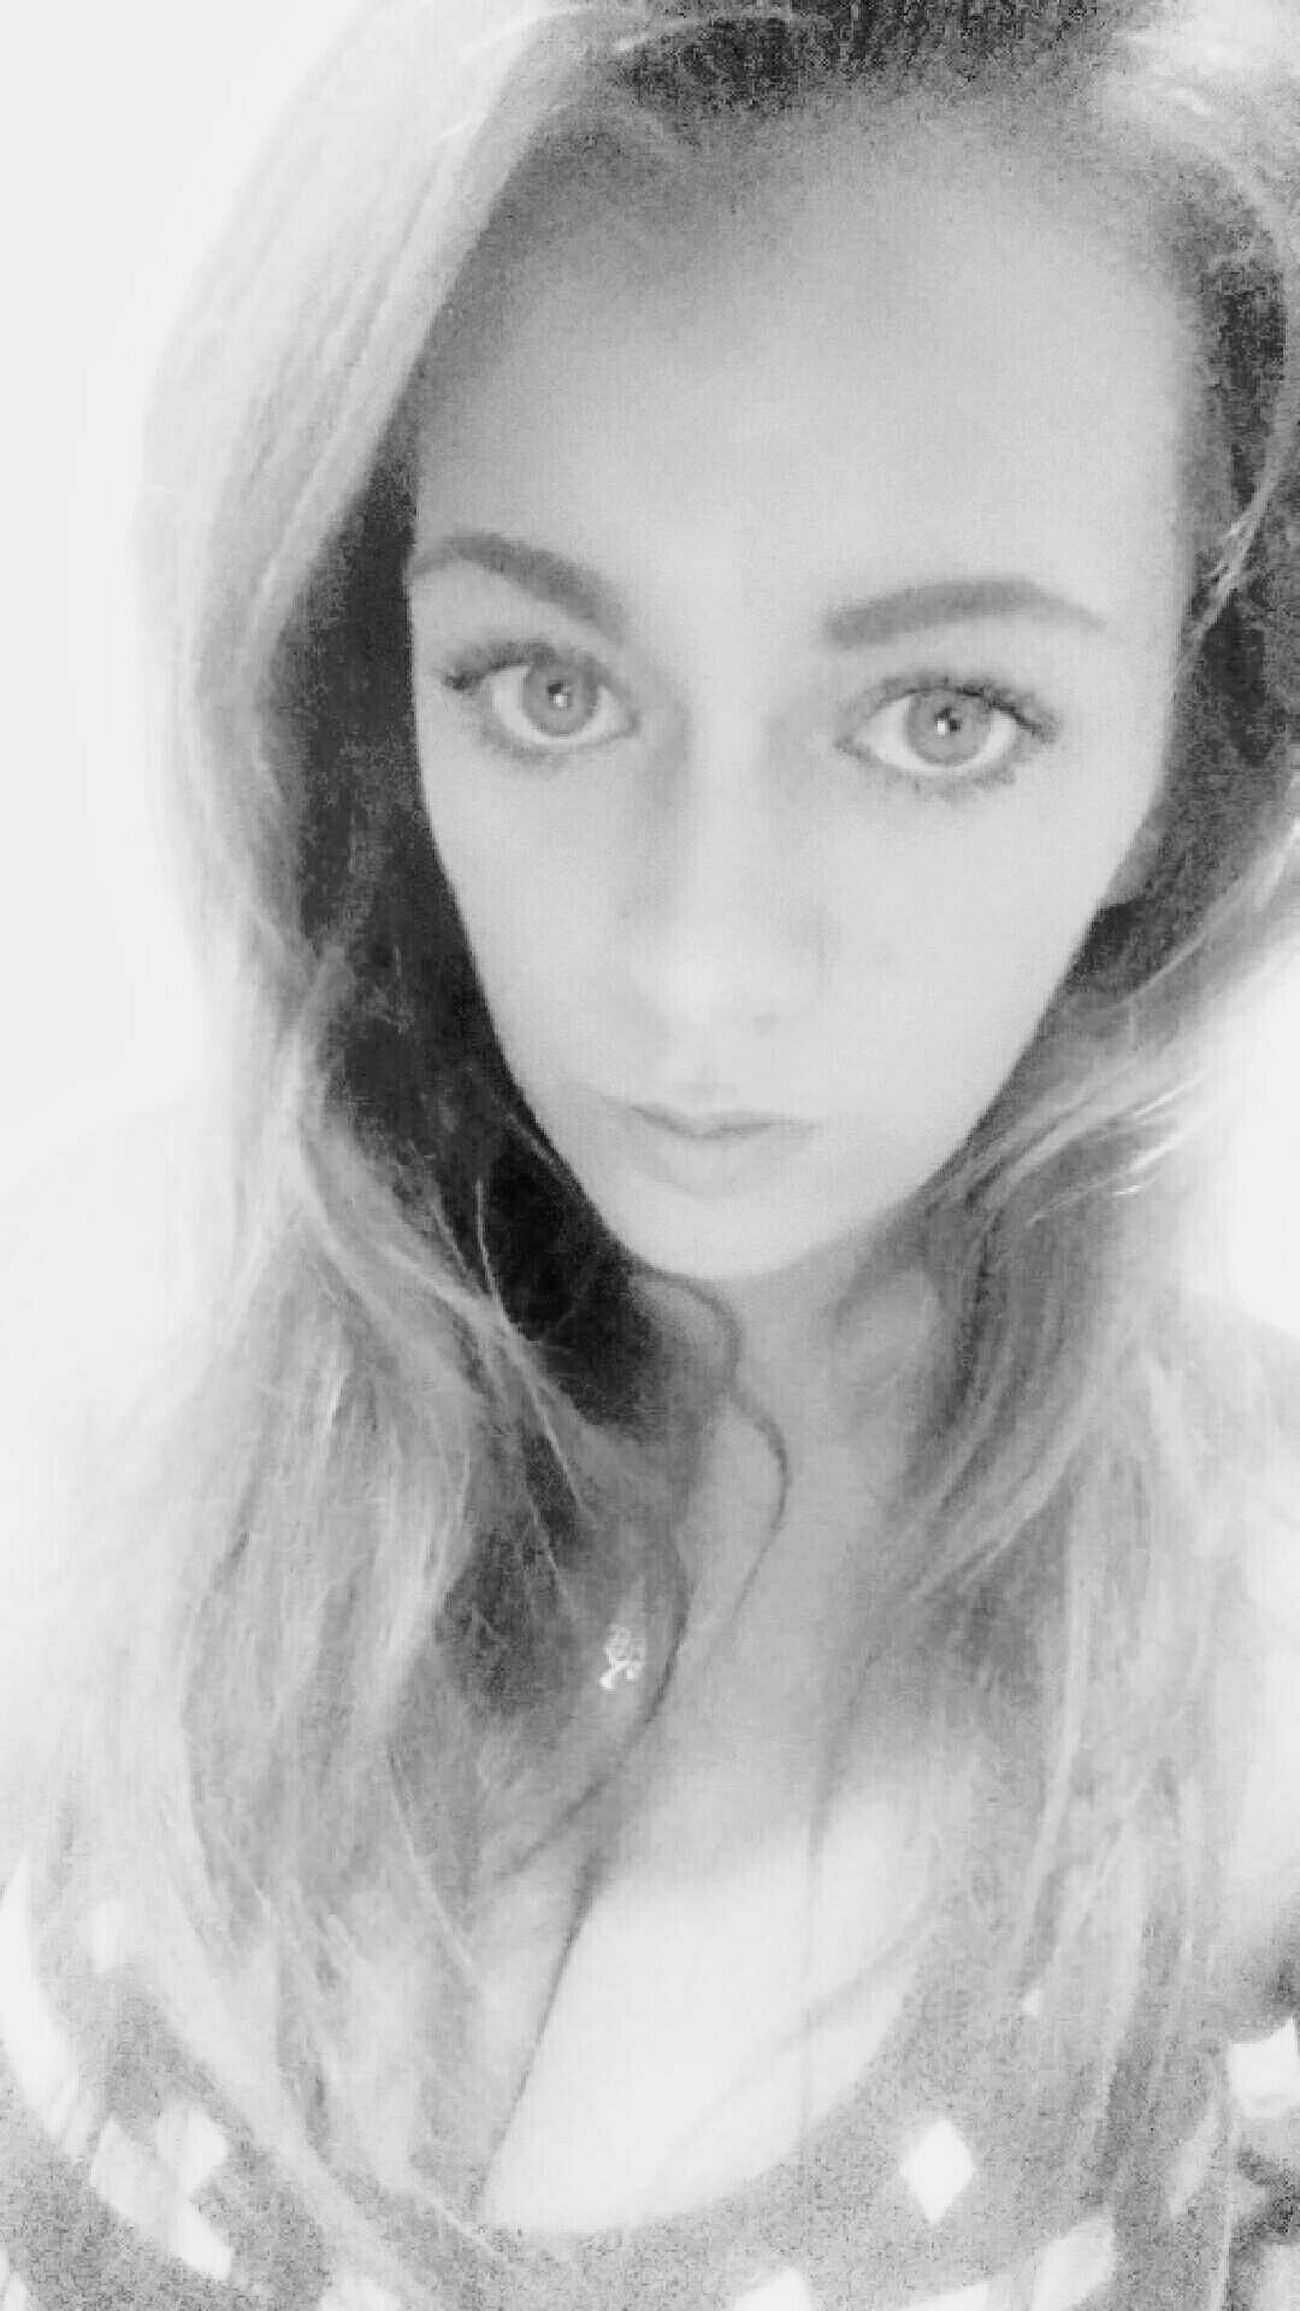 Blackandwhite Muah  That Body Hello World Like This Good Morning Cheese! Rocking All Natural Laying Down Thank You My Friends 😊 Hanging Out Taking Photos That's Me Relaxing Hi! Bored Snapchat Check This Out Girl Those Eyes Sara Enjoying Life Winning Me